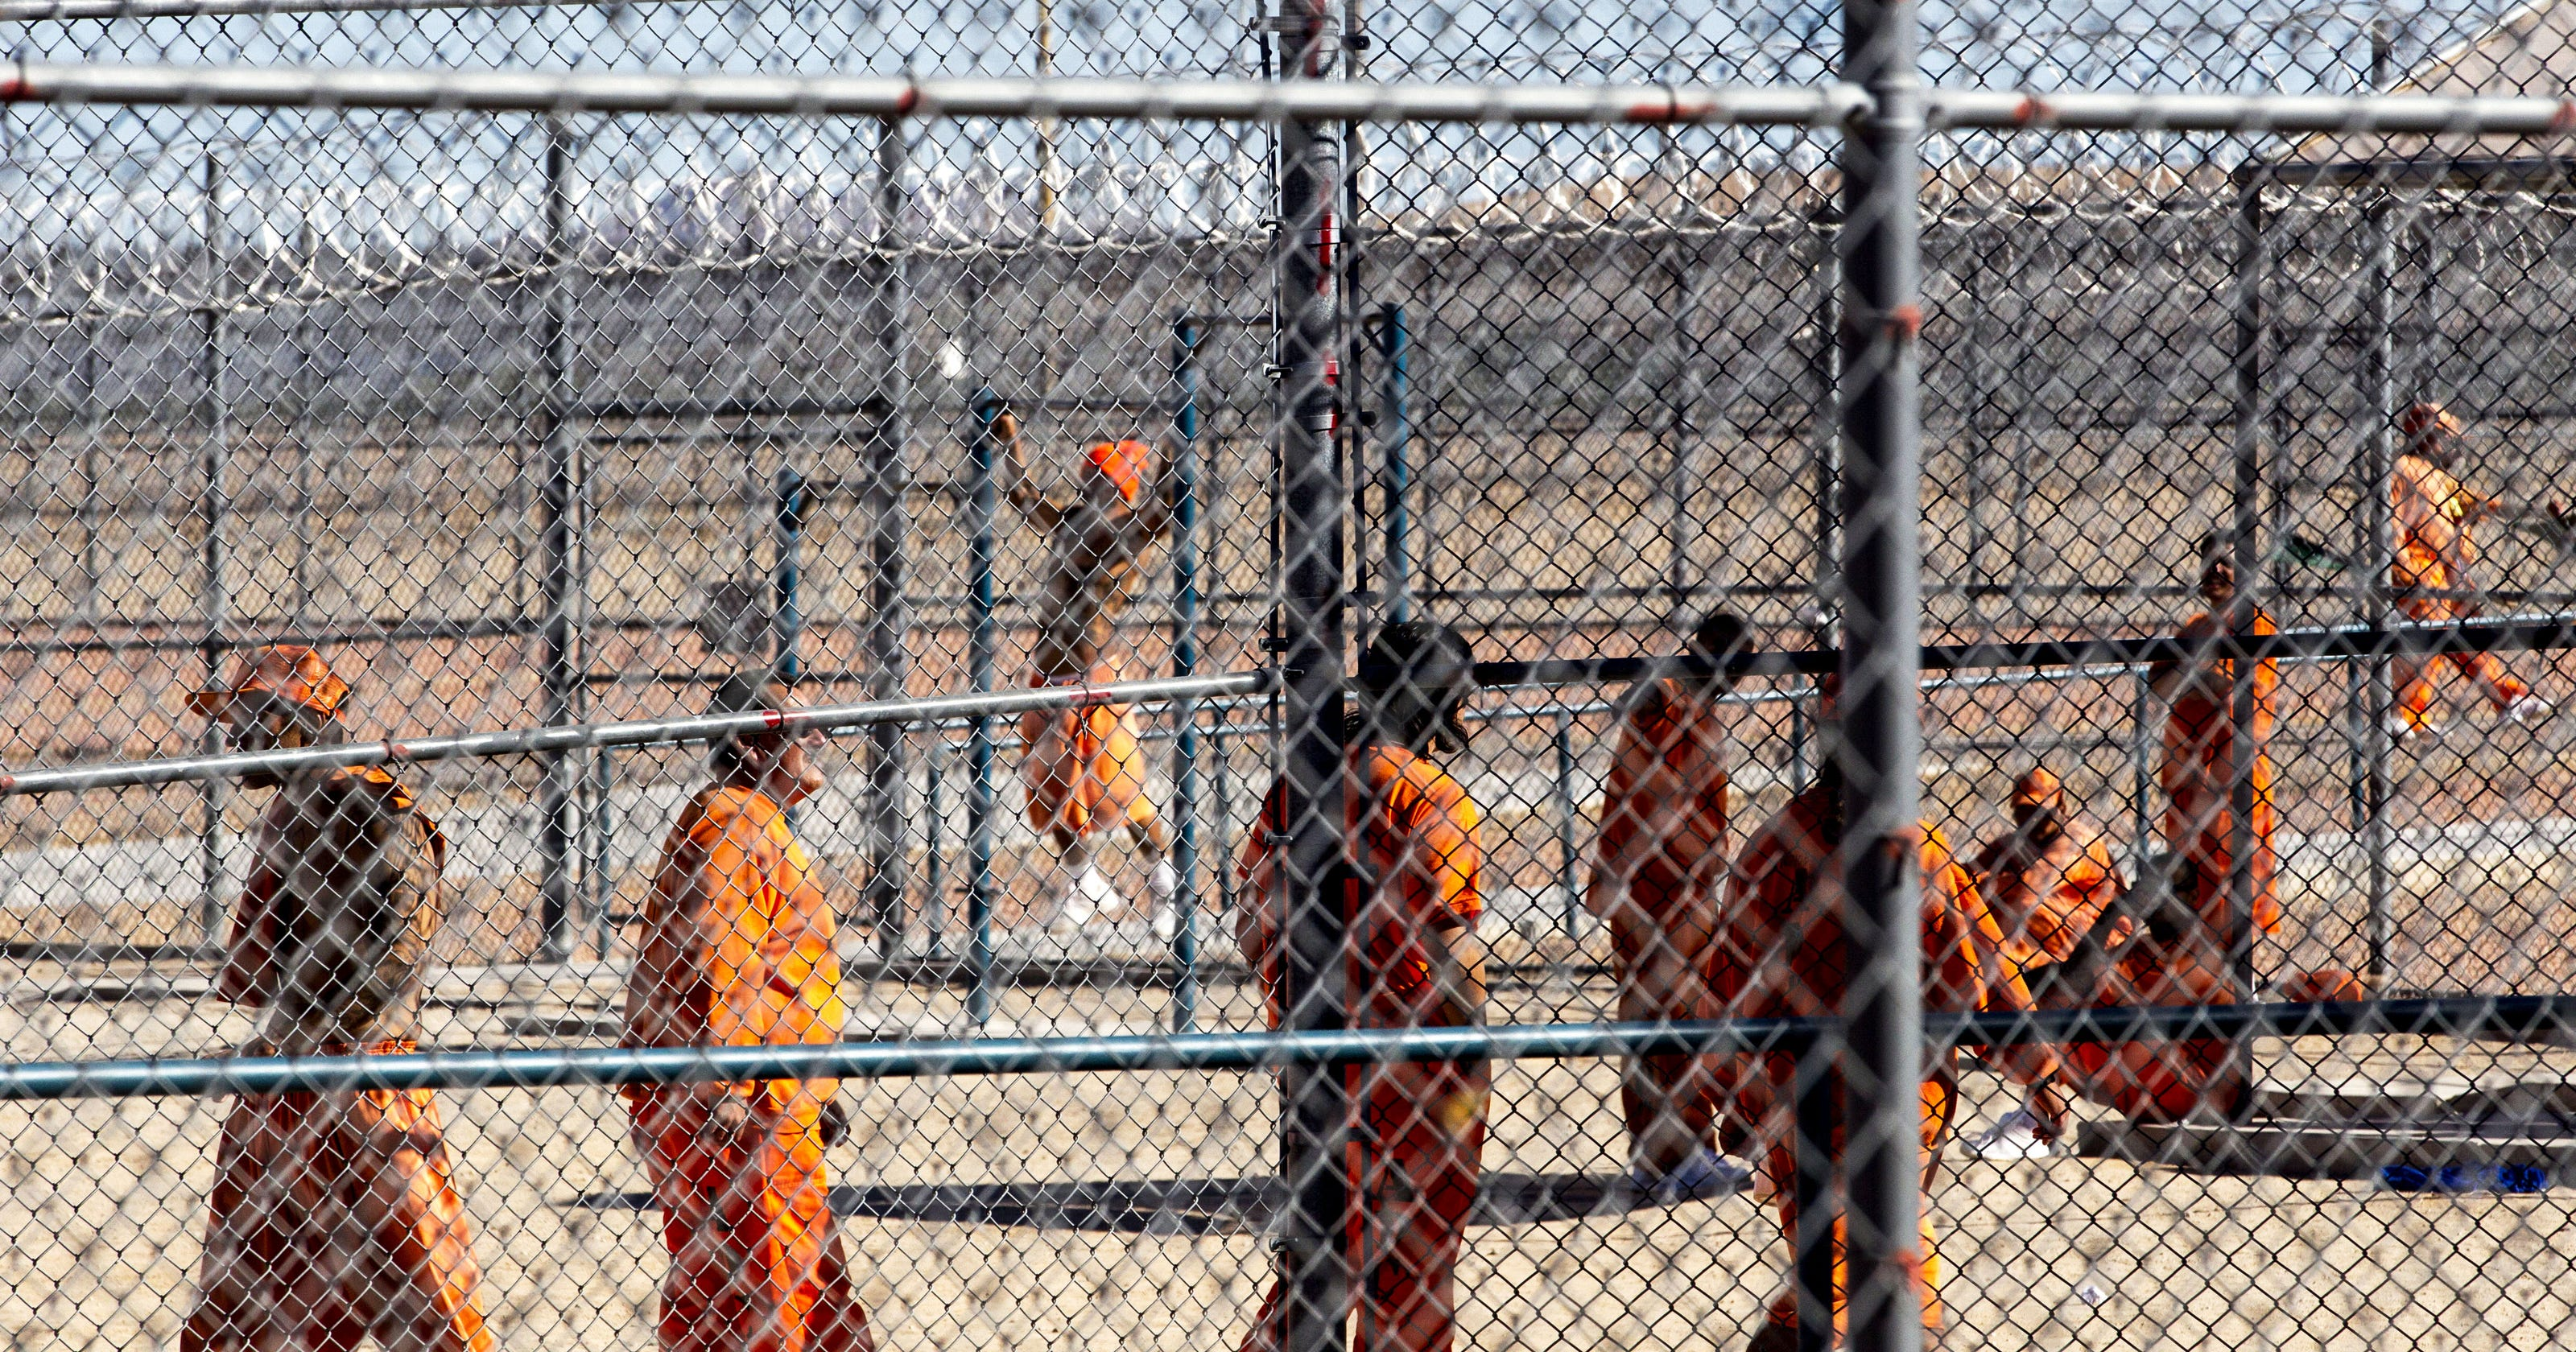 Family sues Arizona Department of Corrections after death in